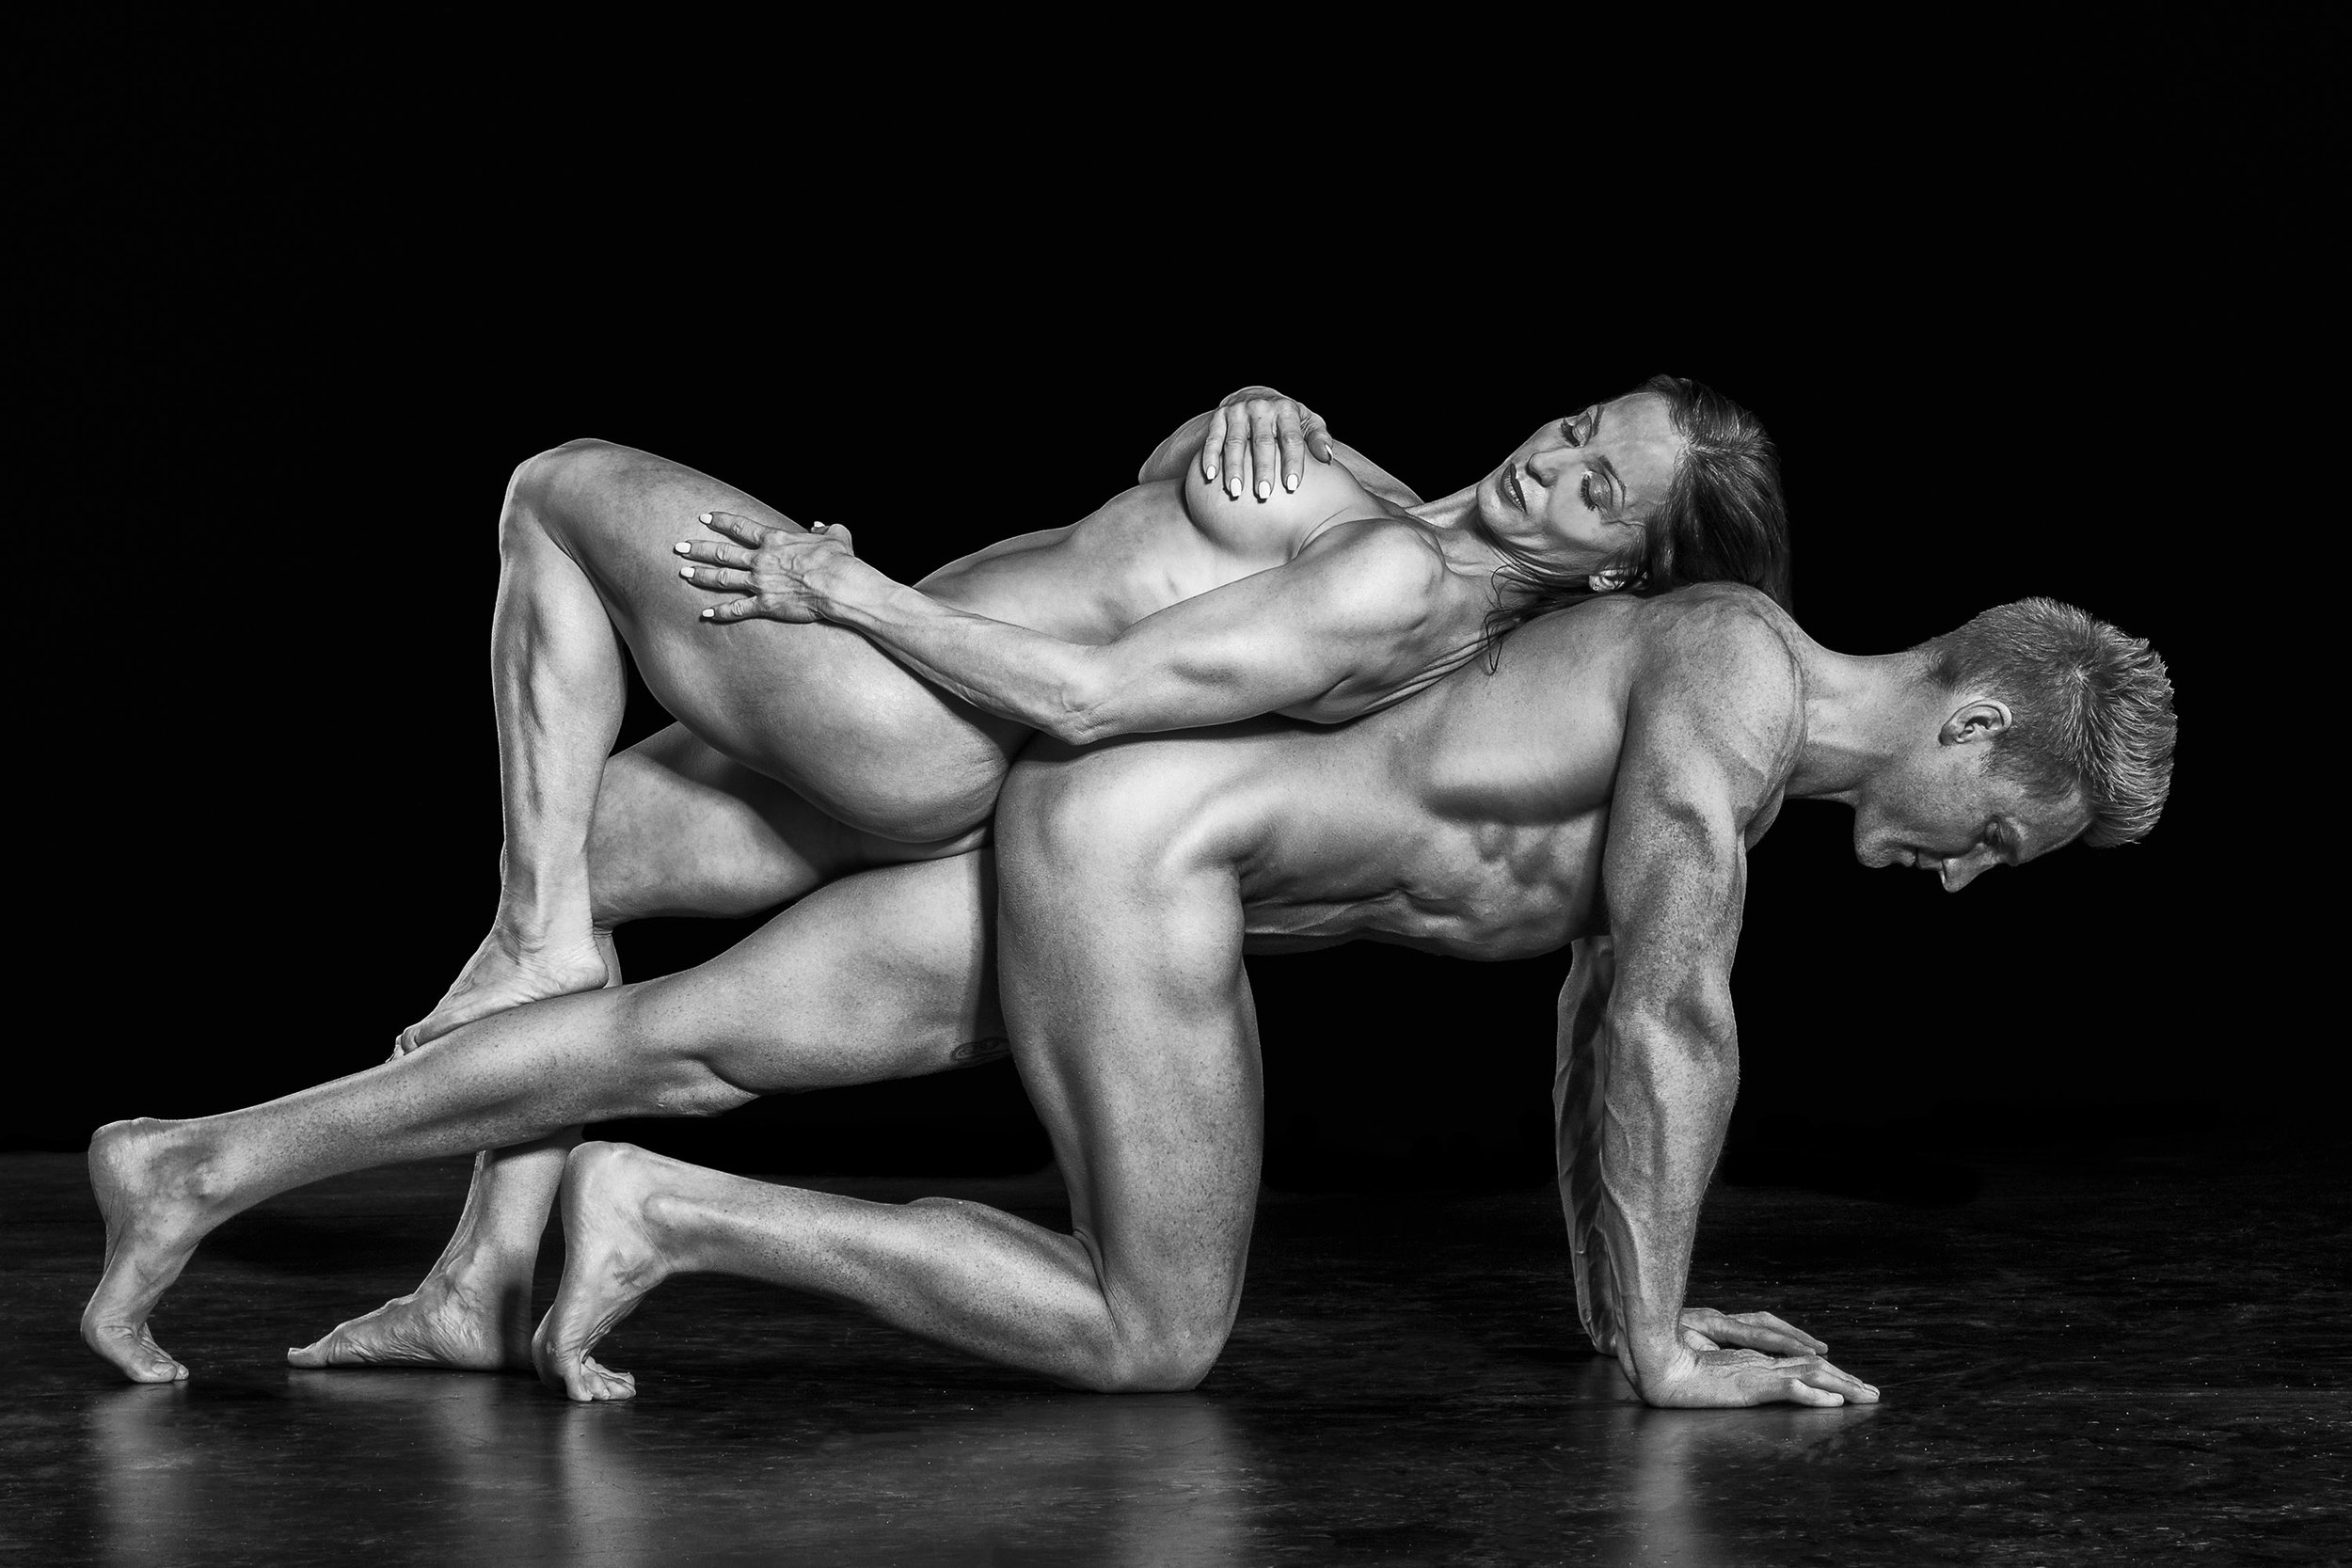 Nude Athletic Couples photo 1